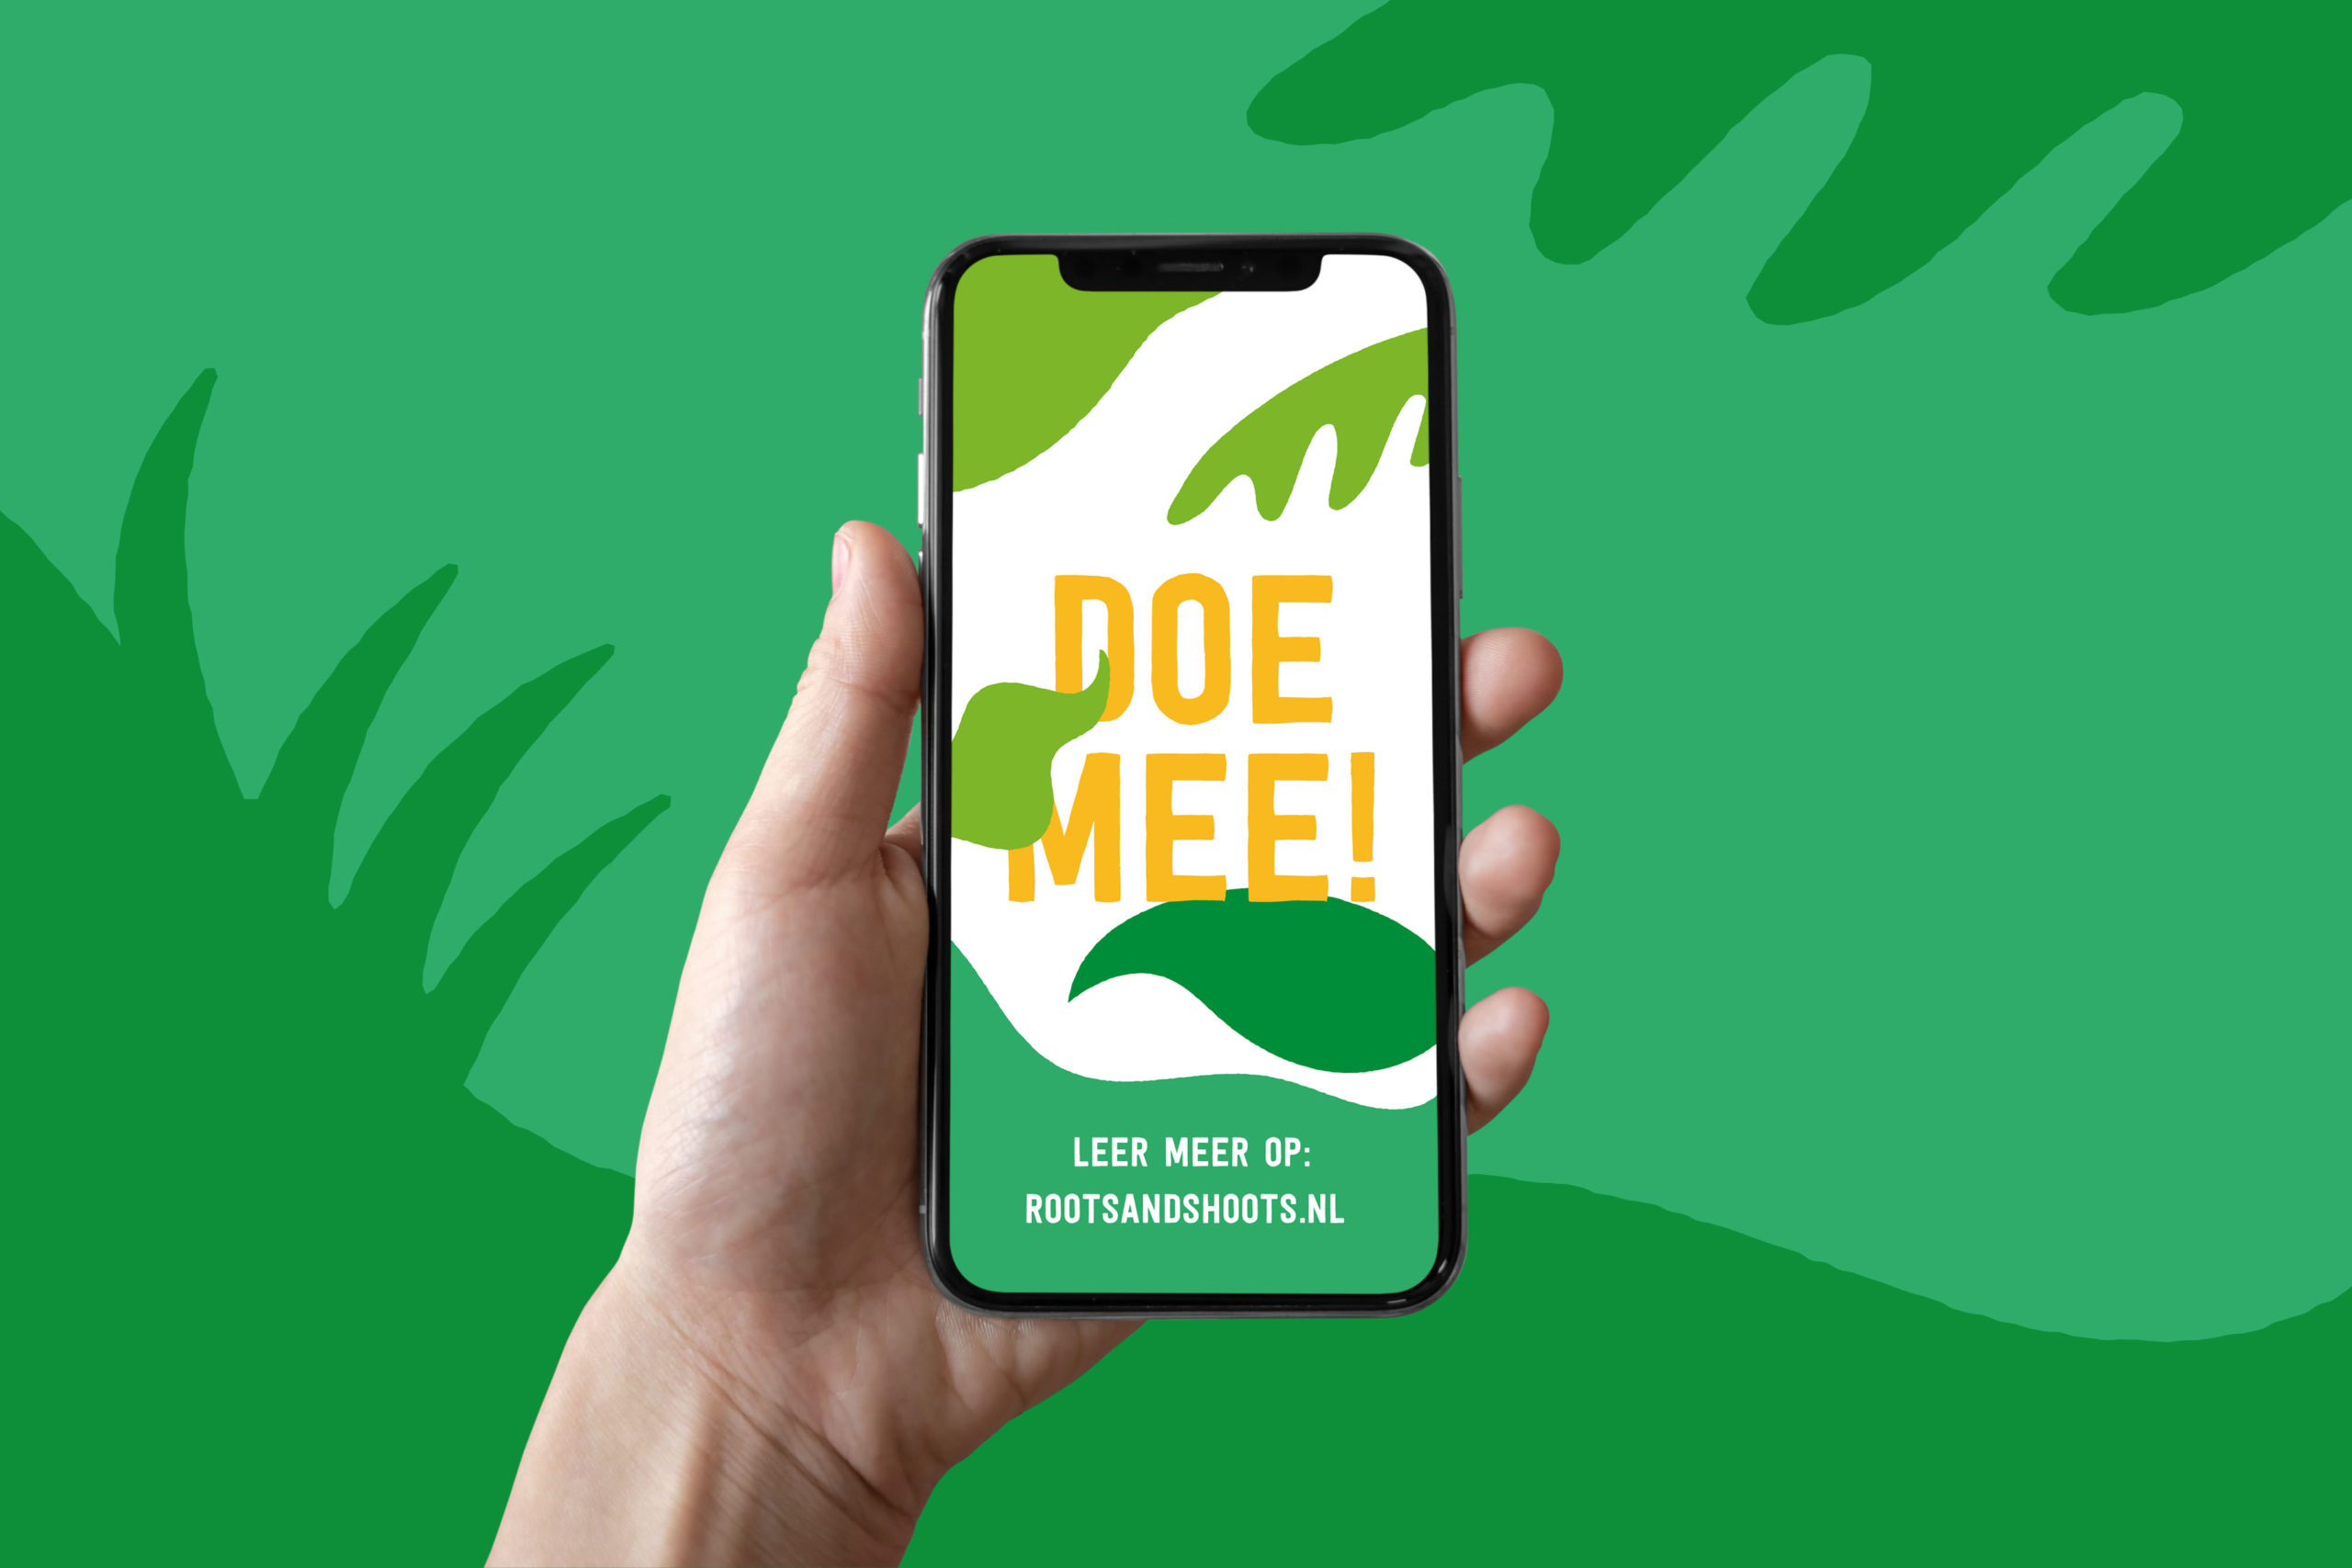 Roots and Shoots - Doe Mee! - iPhone mockup 1